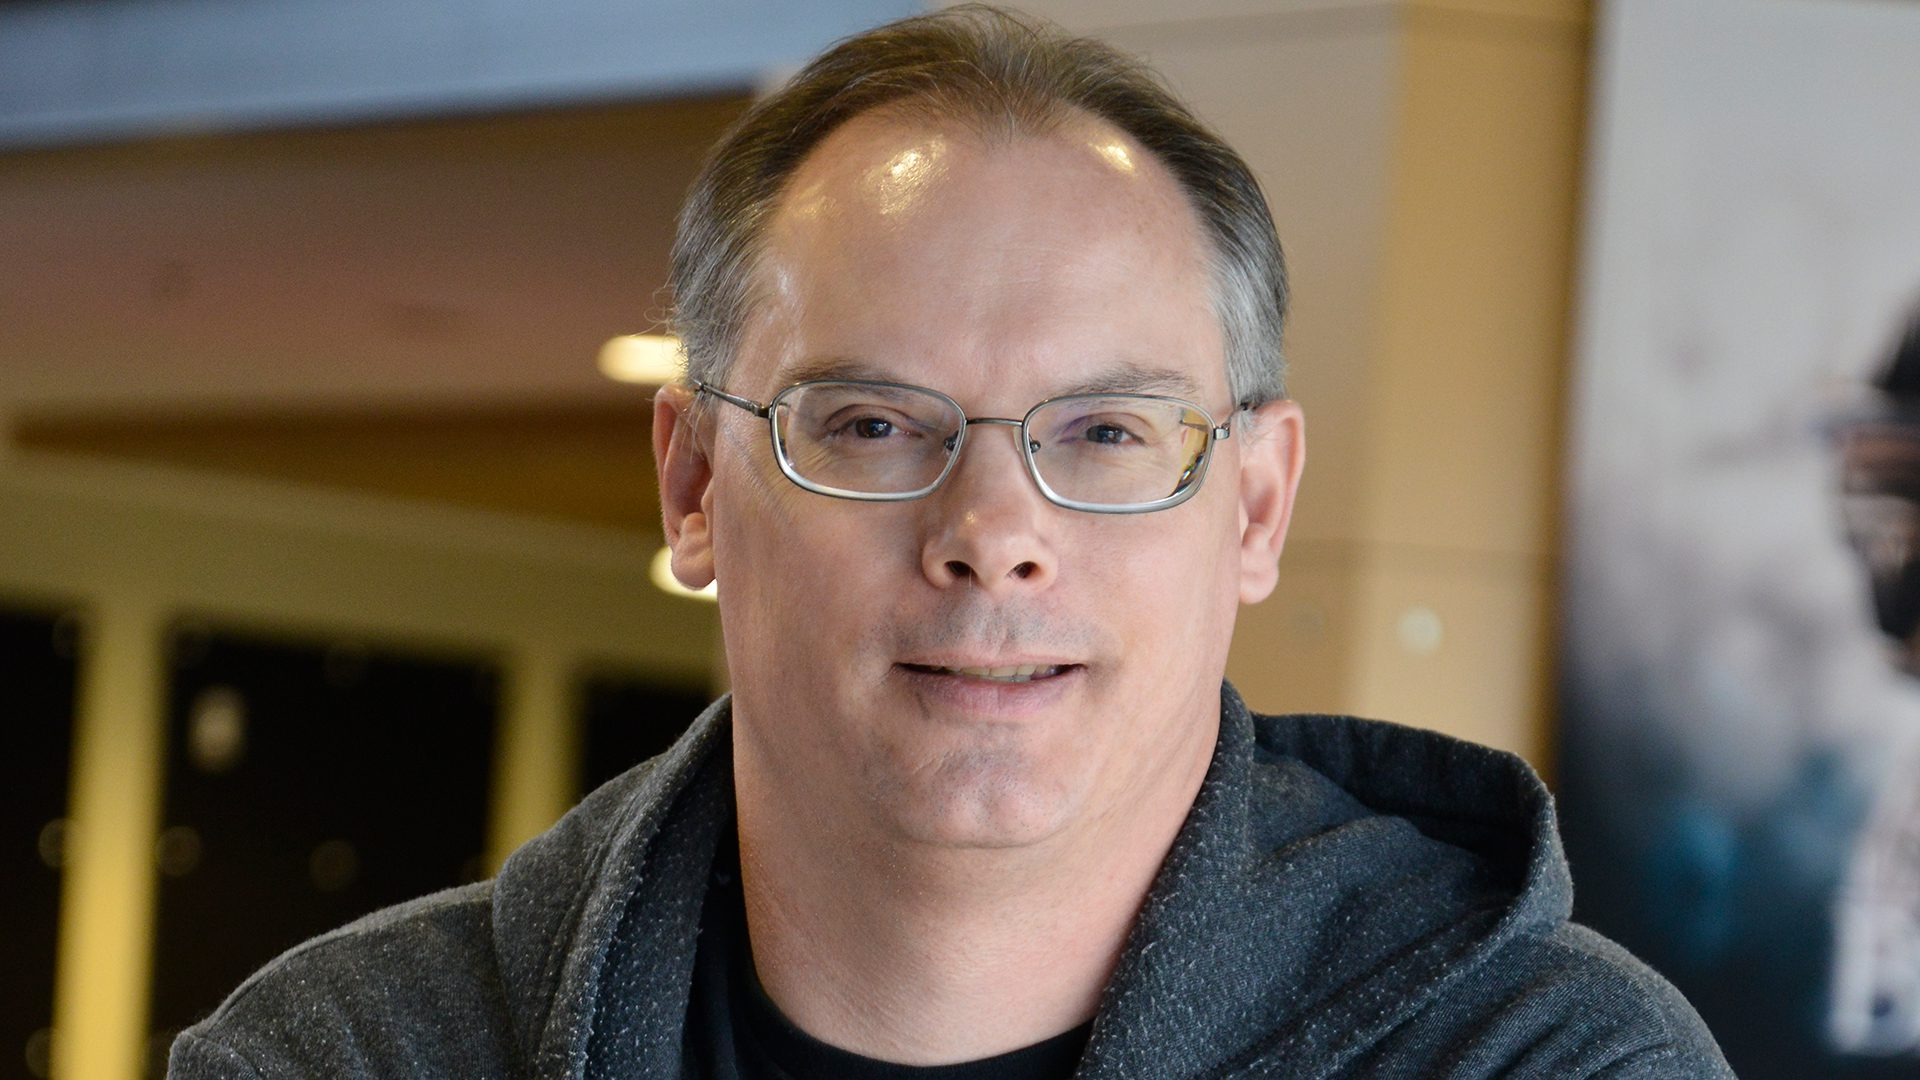 Tim Sweeney, CEO Epic Games